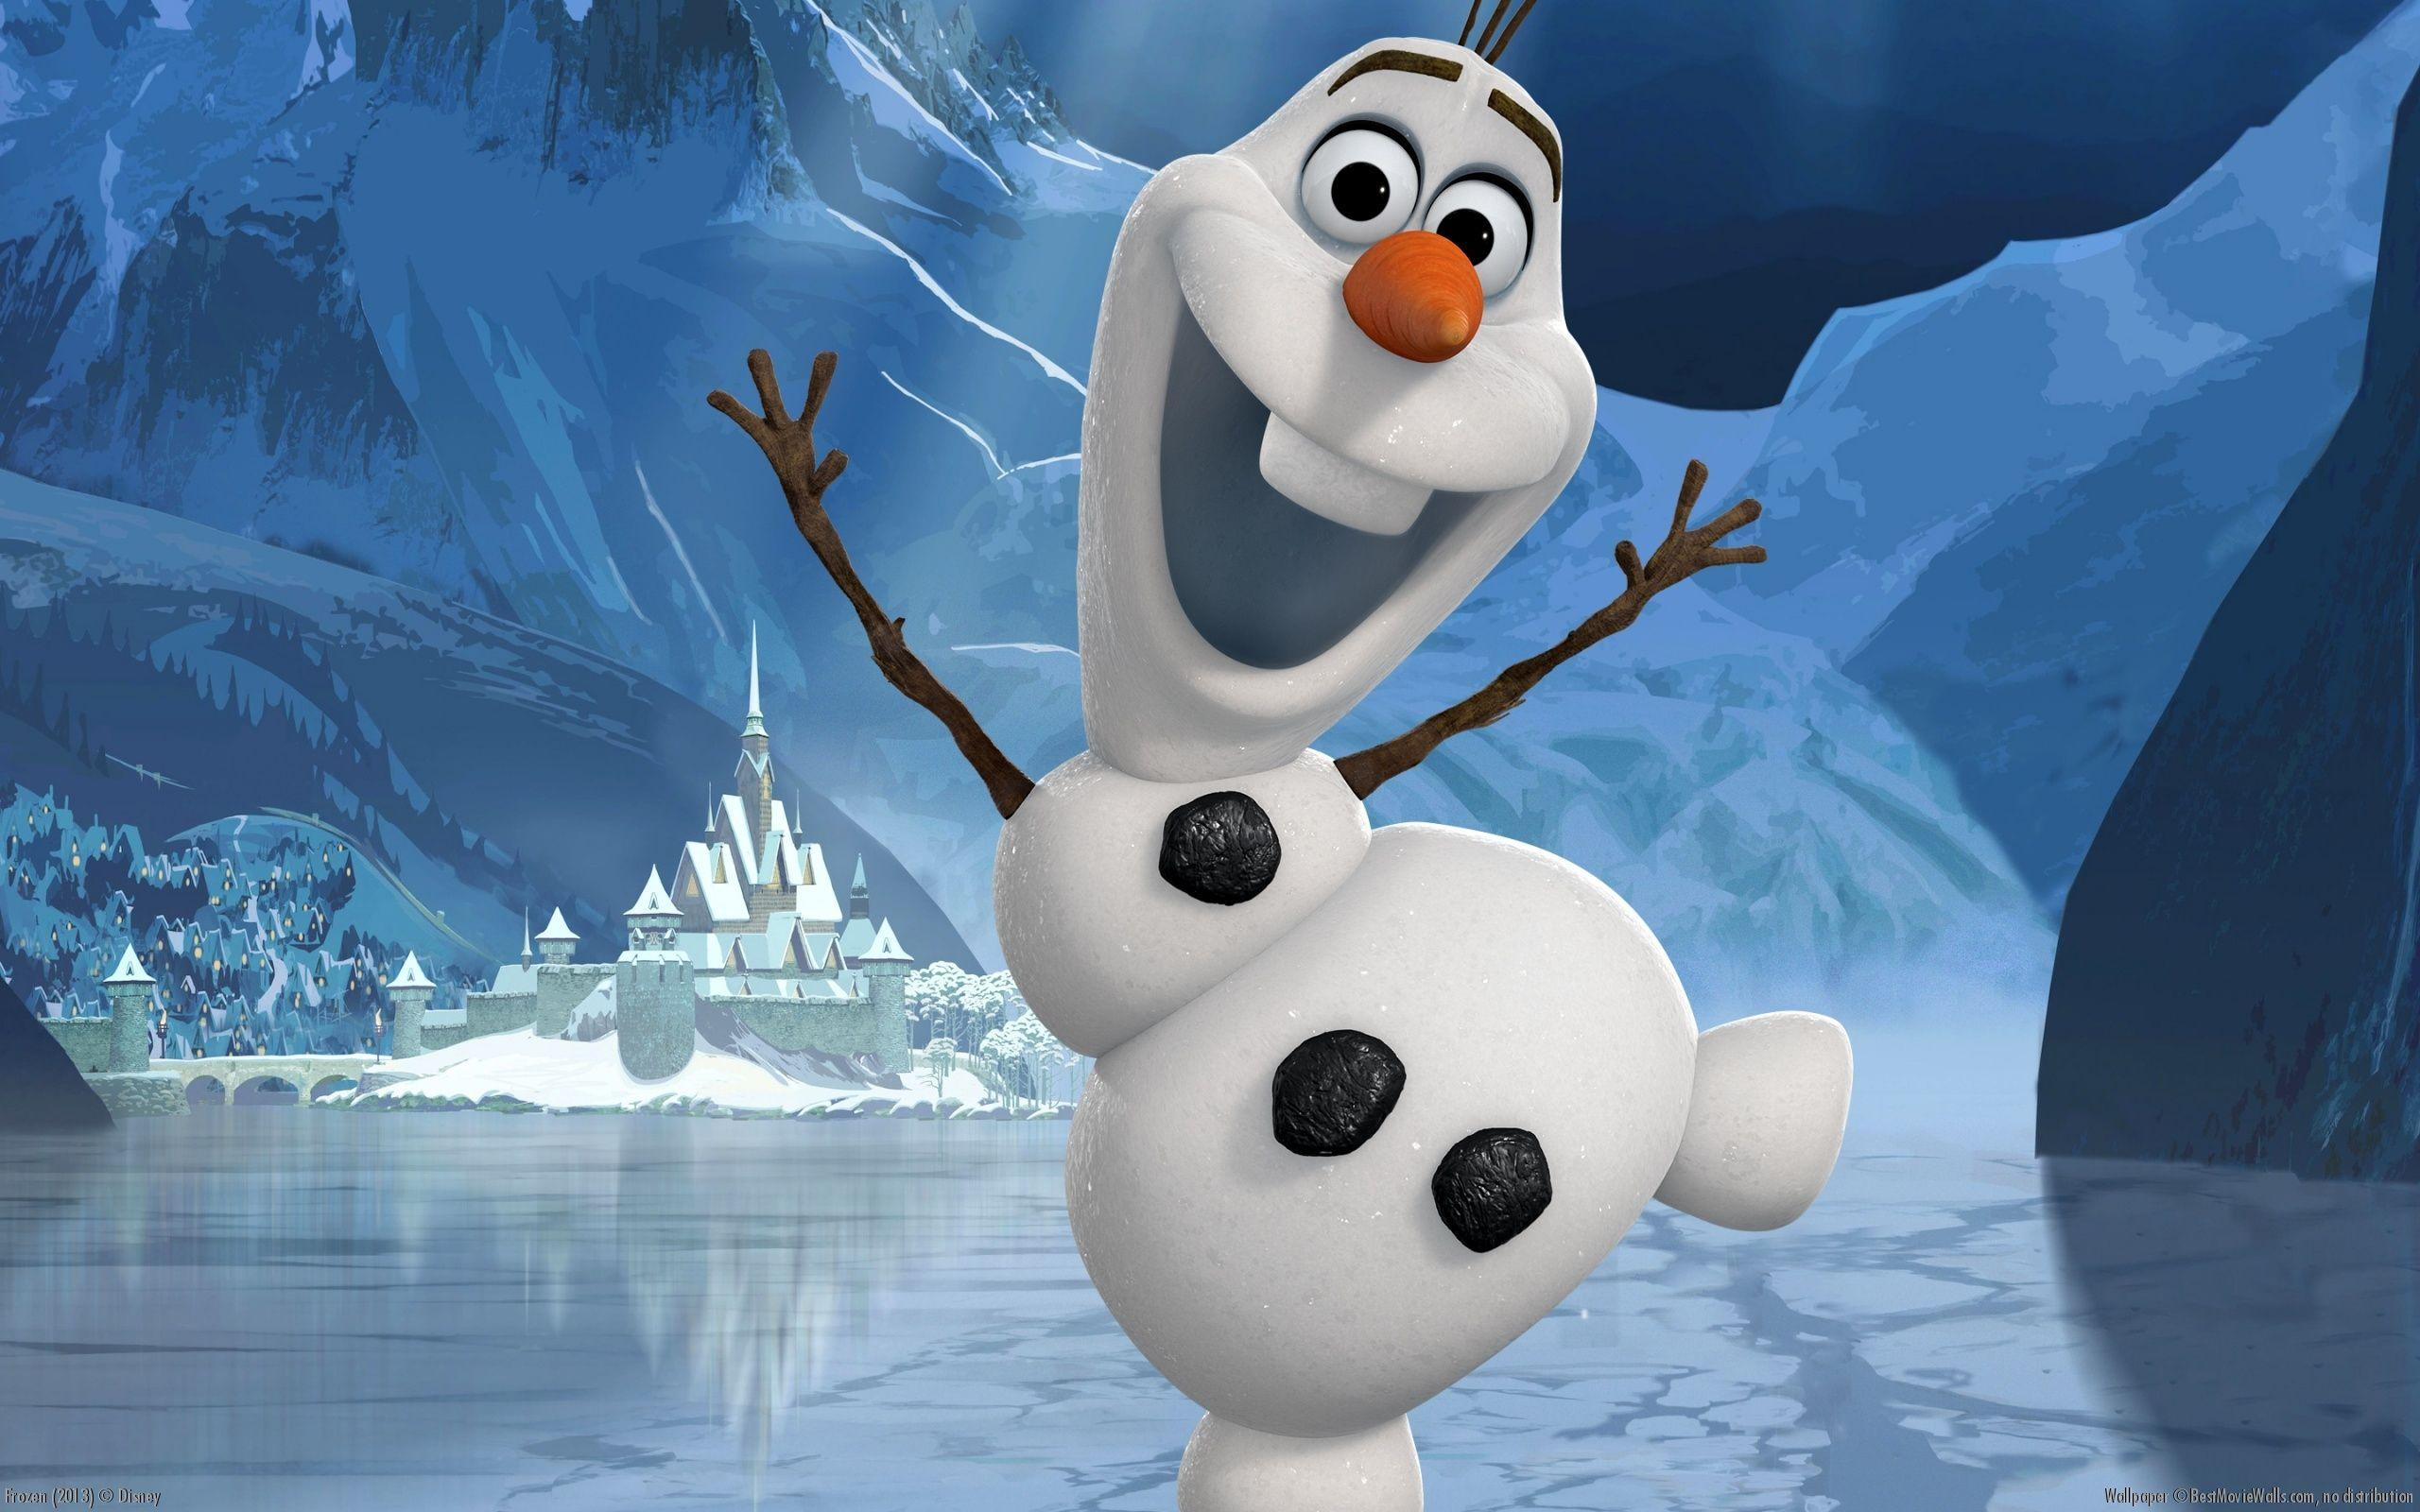 Frozen Movie Wallpapers HD Amp Facebook Timeline Covers